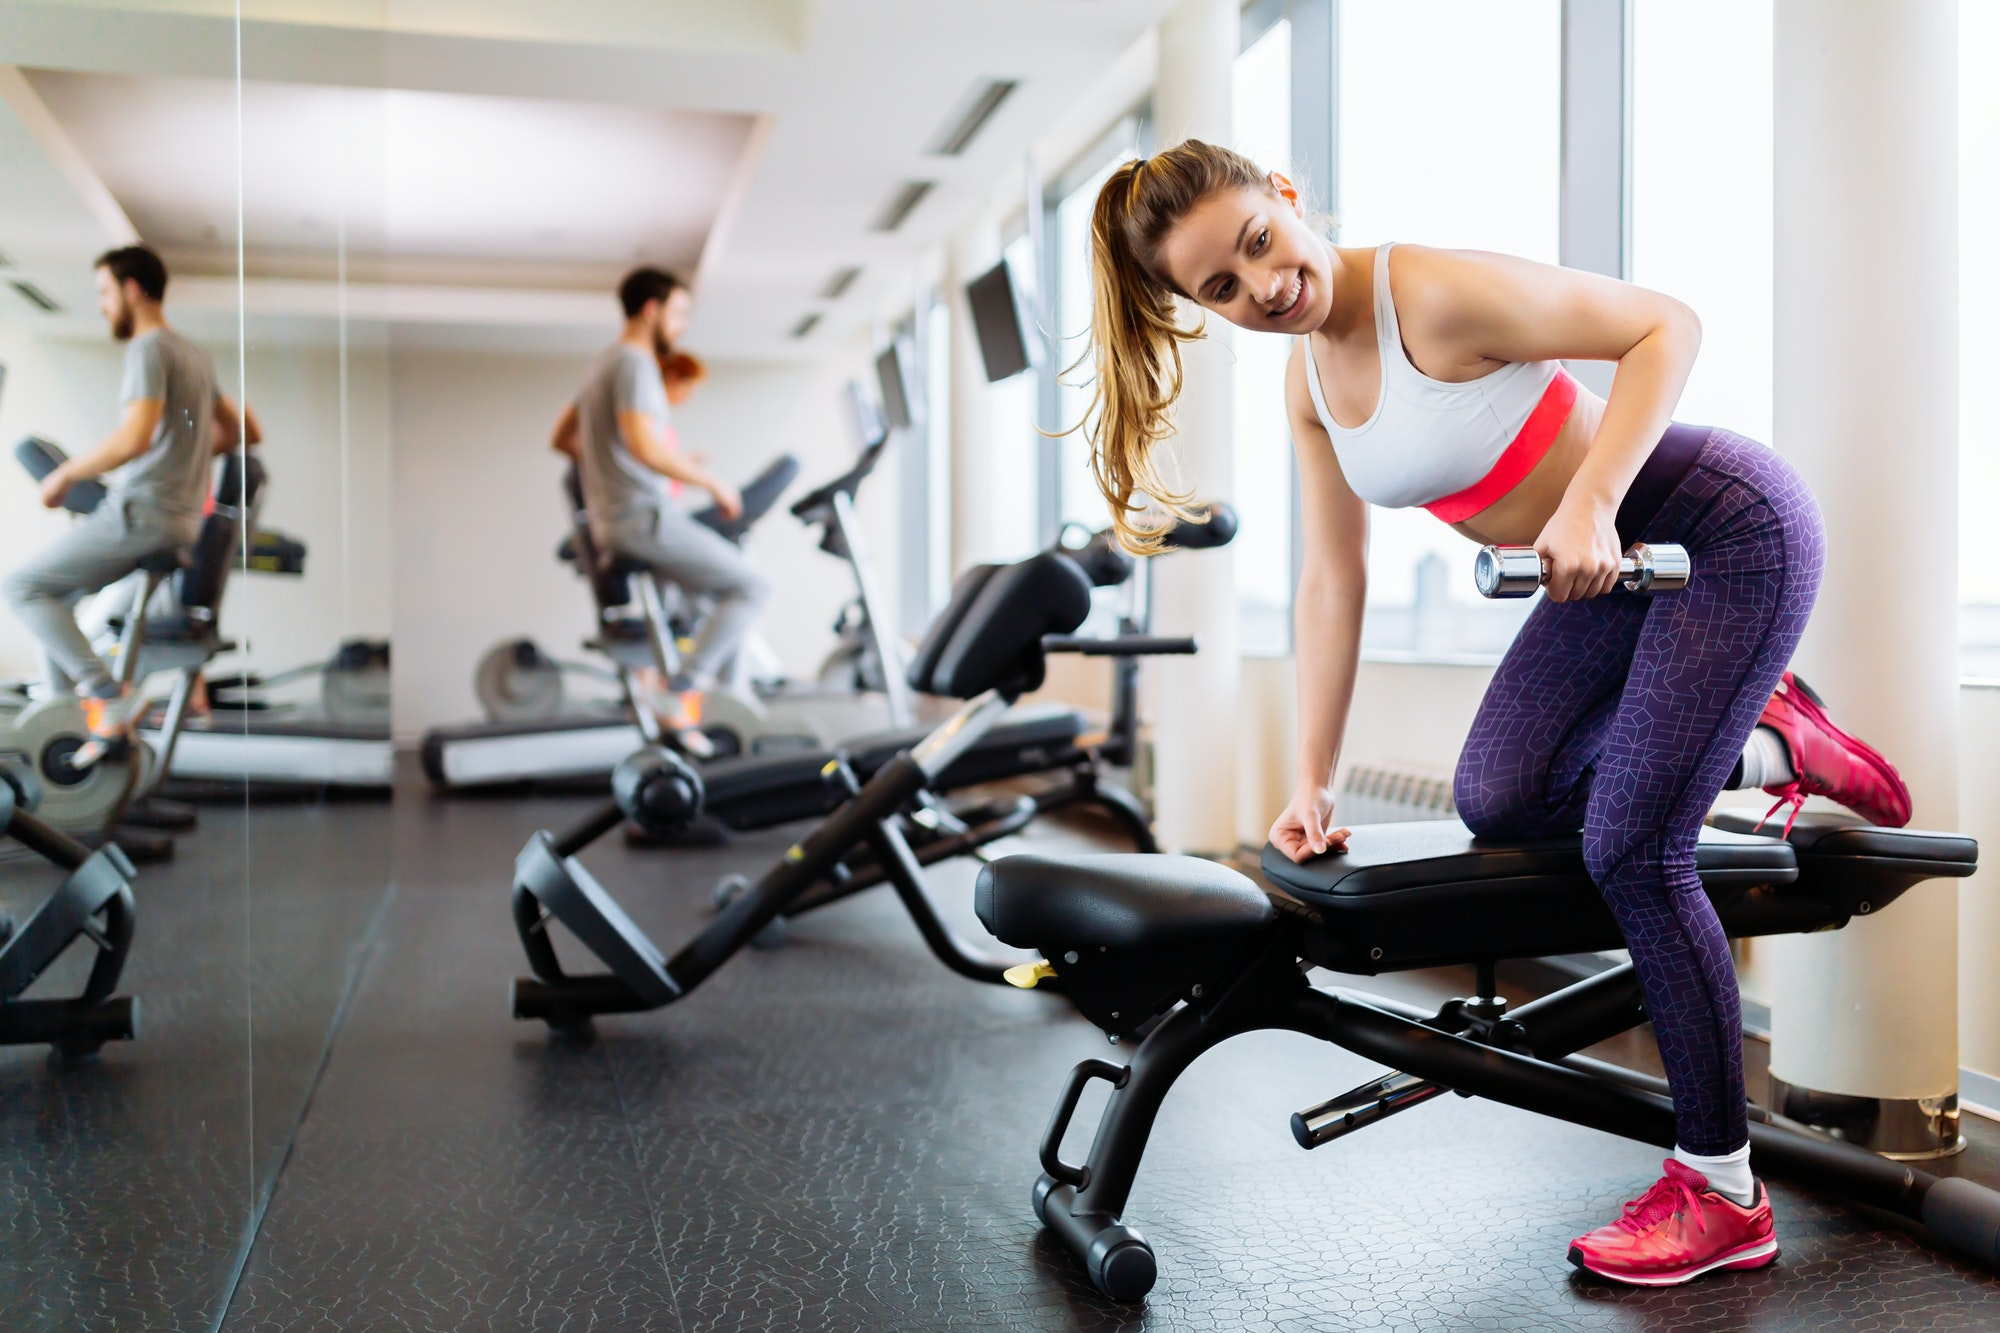 fit-woman-working-out-in-gym.jpg